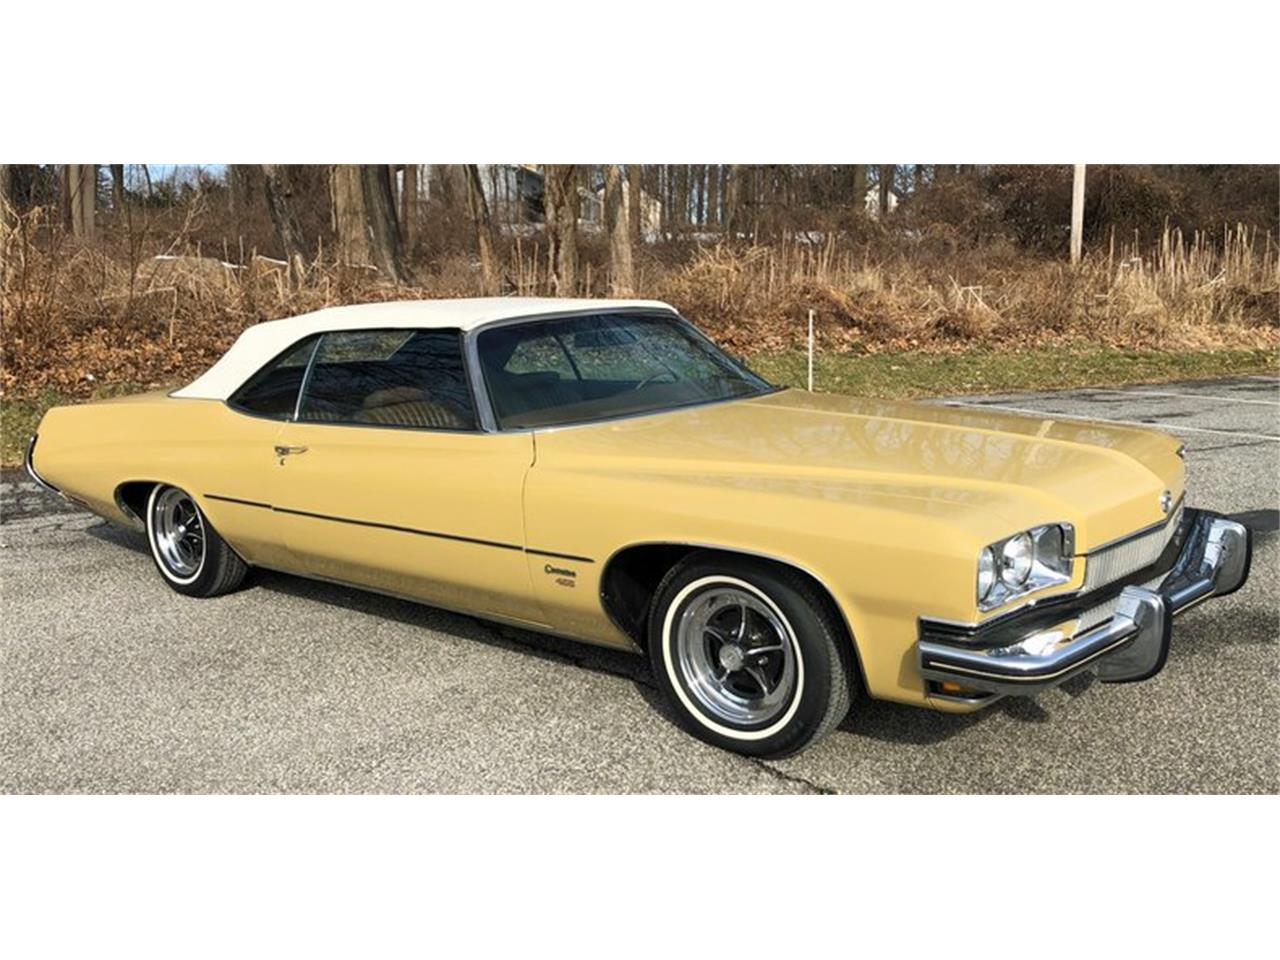 Large Picture of Classic '73 Buick Centurion located in West Chester Pennsylvania - $21,500.00 - PBP7